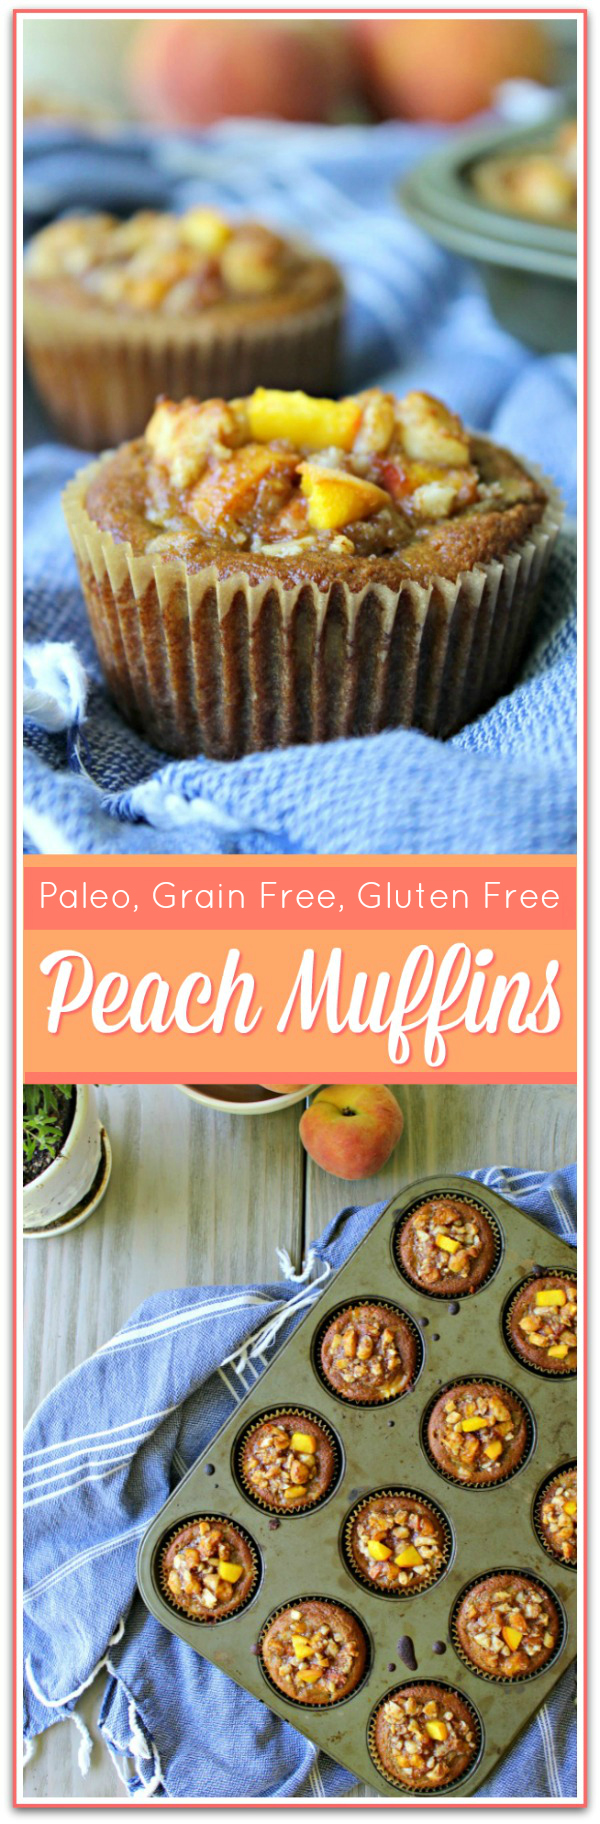 These are delicious and healthy! Paleo Peach Muffins (Grain Free, Gluten Free)